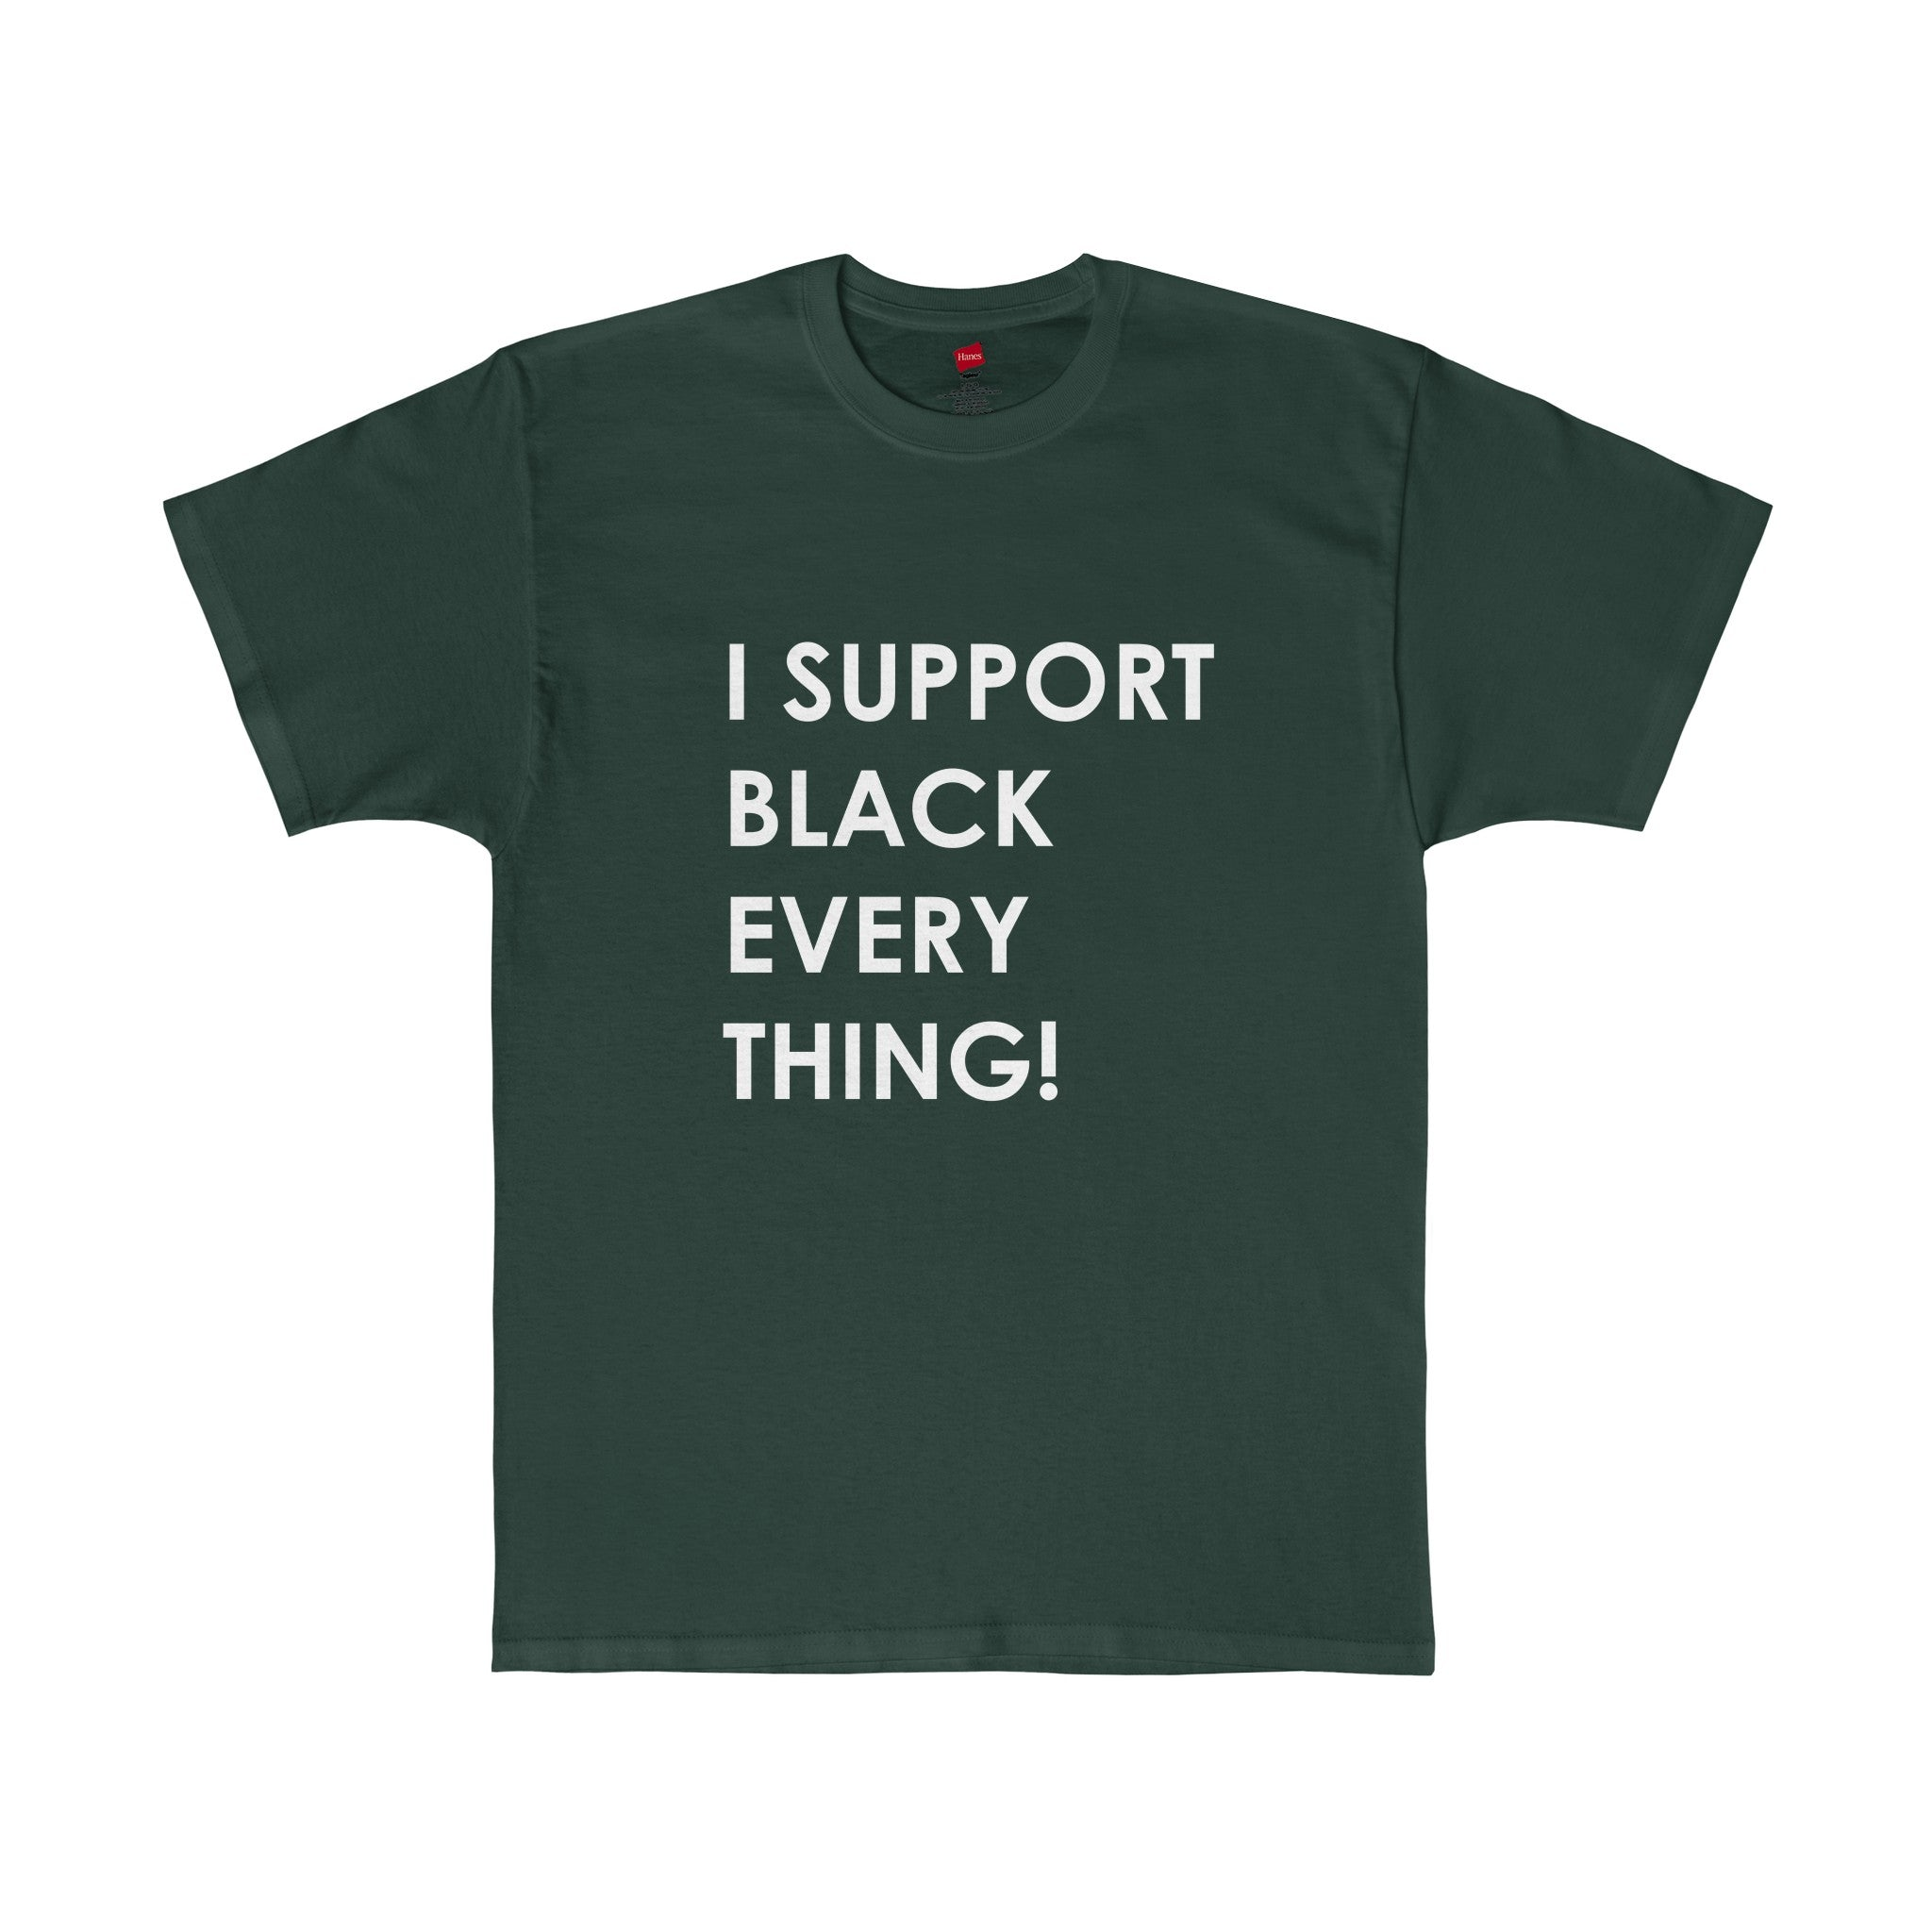 I Support Black Everything - Men's Tee